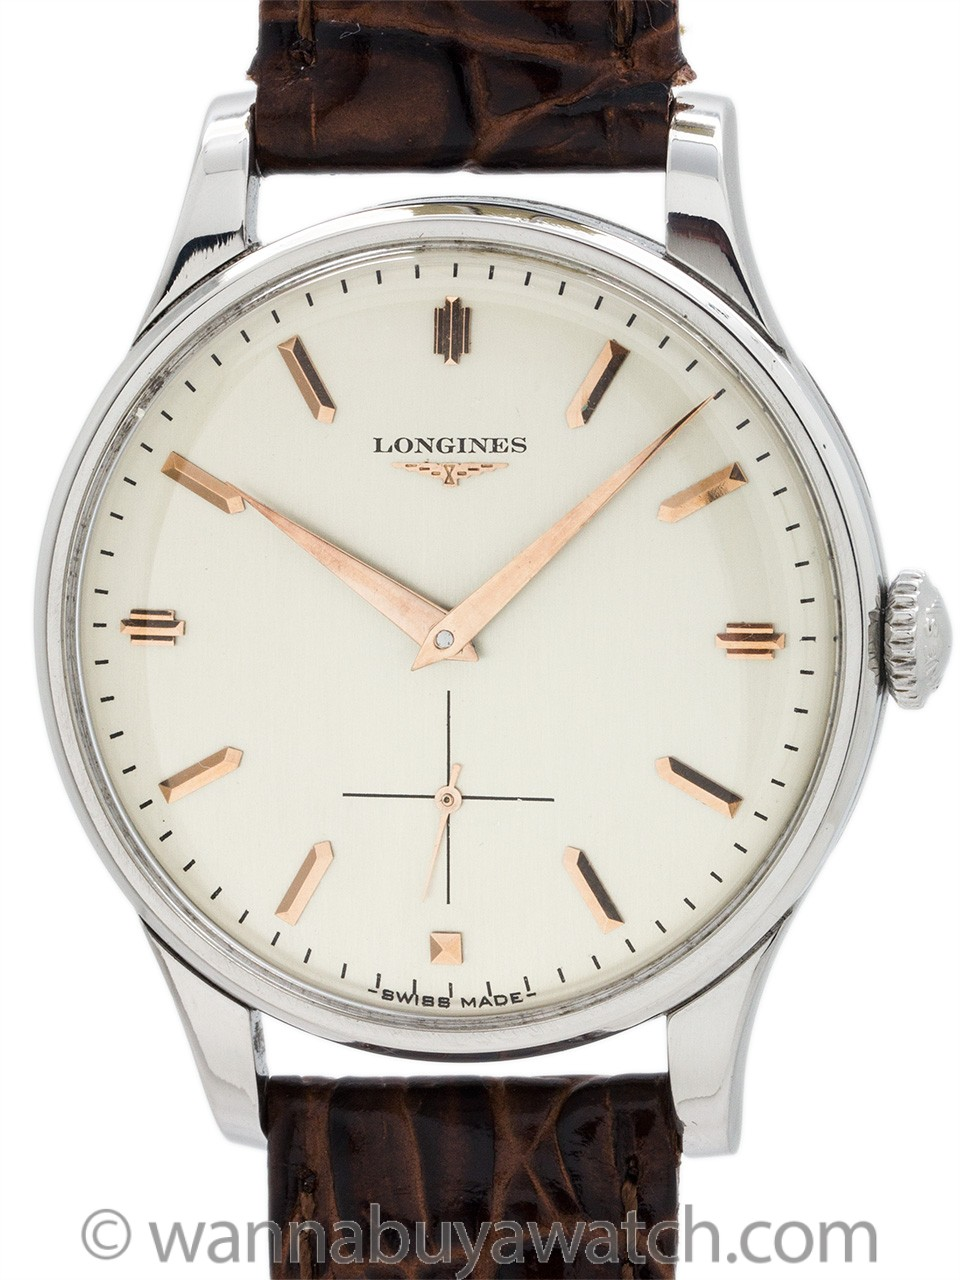 Longines Oversize Stainless Steel Dress Model circa 1956